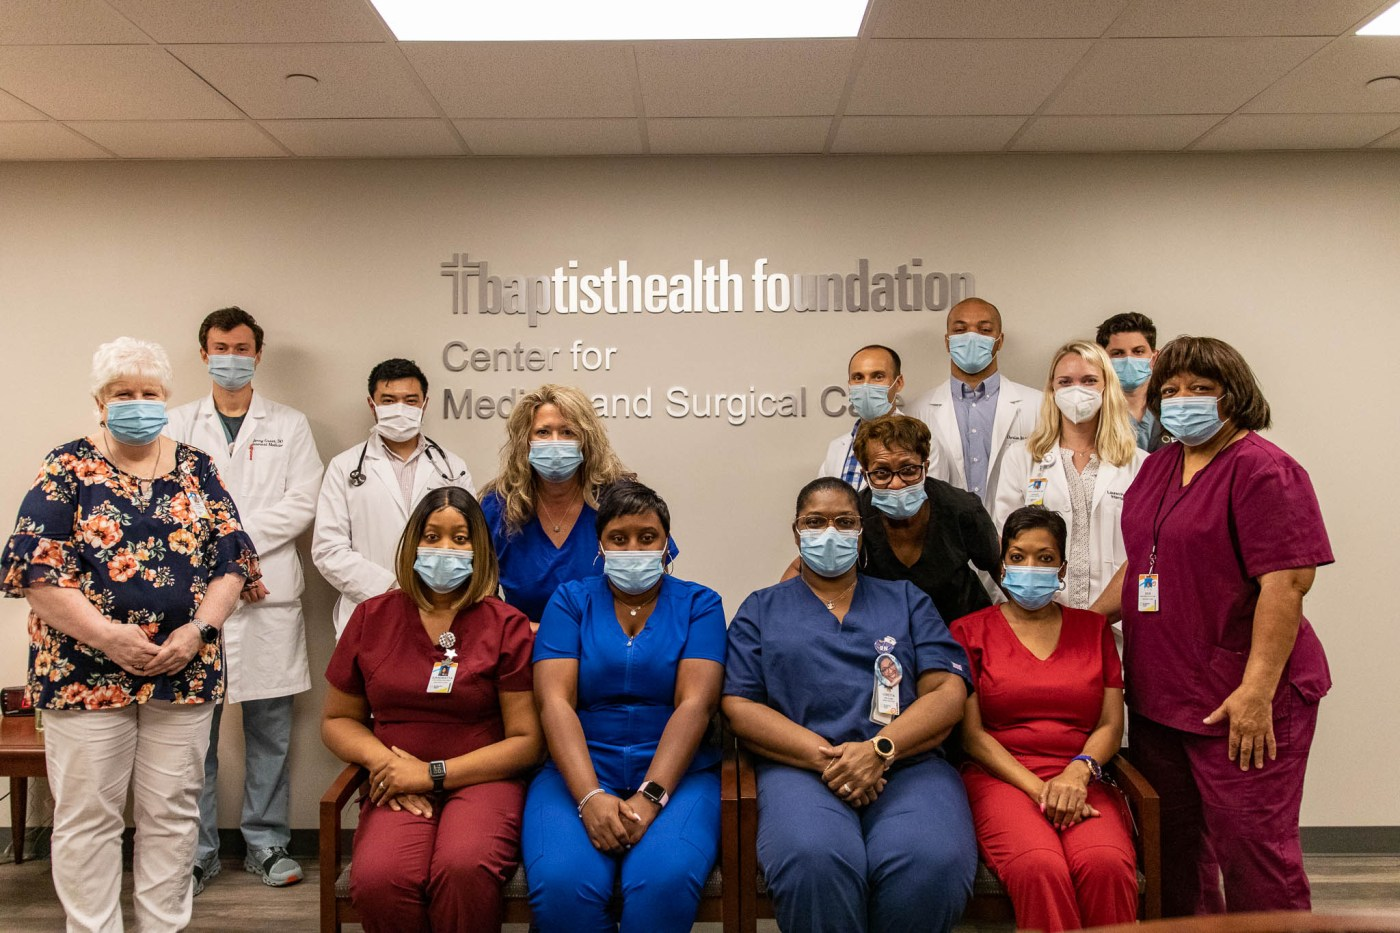 Baptist Health Foundation Center for Medical and Surgical Care